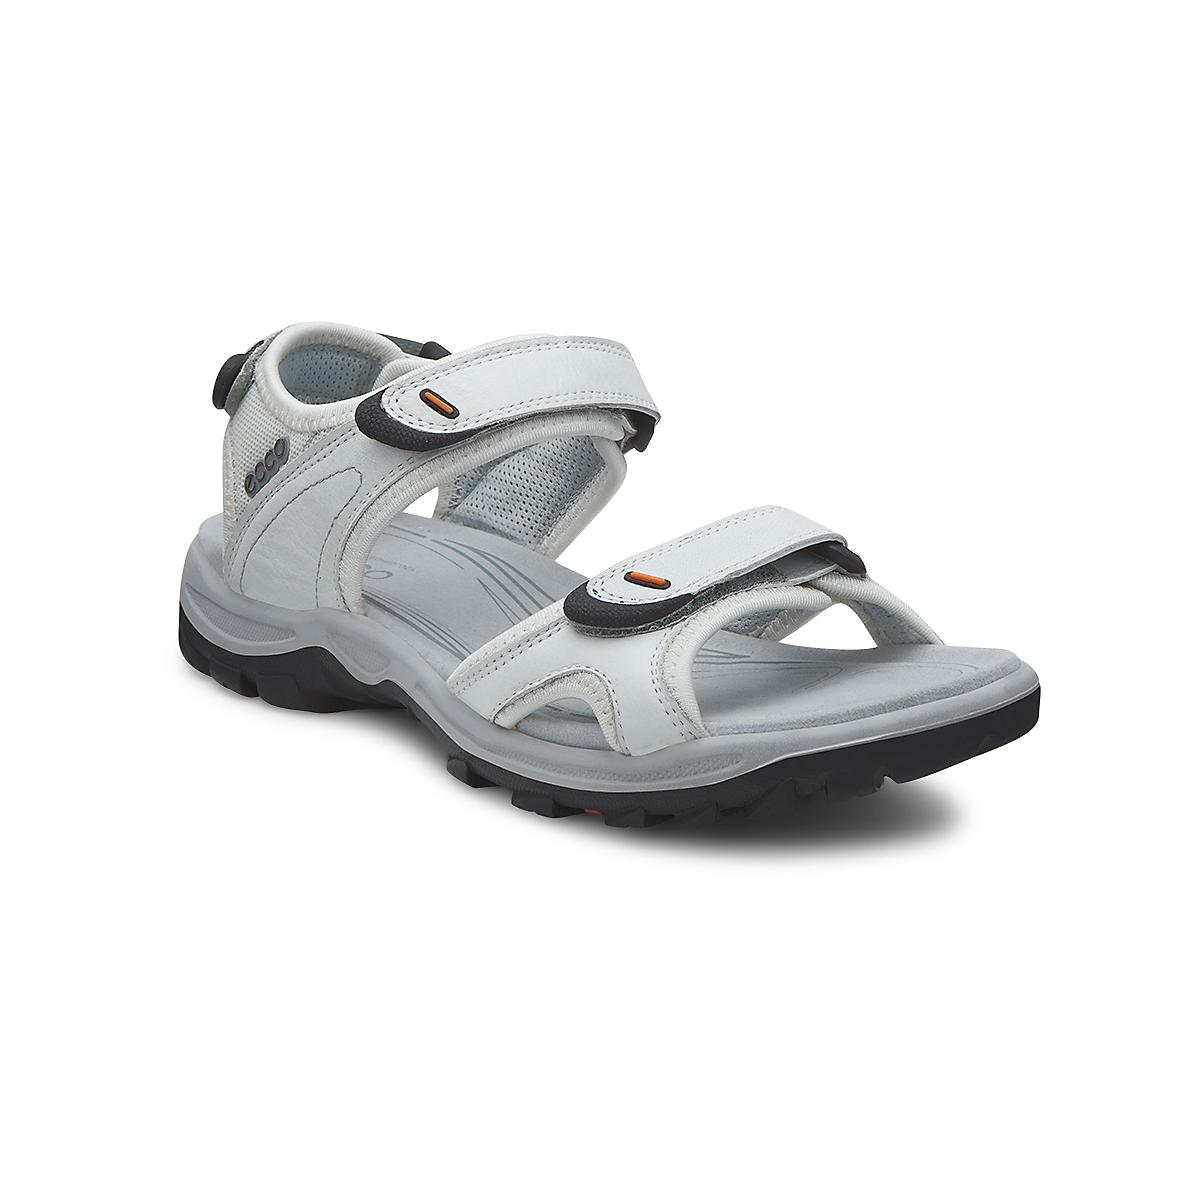 Sale Supply Ecco Women's Offroad Hiking Sandals Discount Shop For Outlet Prices tMGfyH